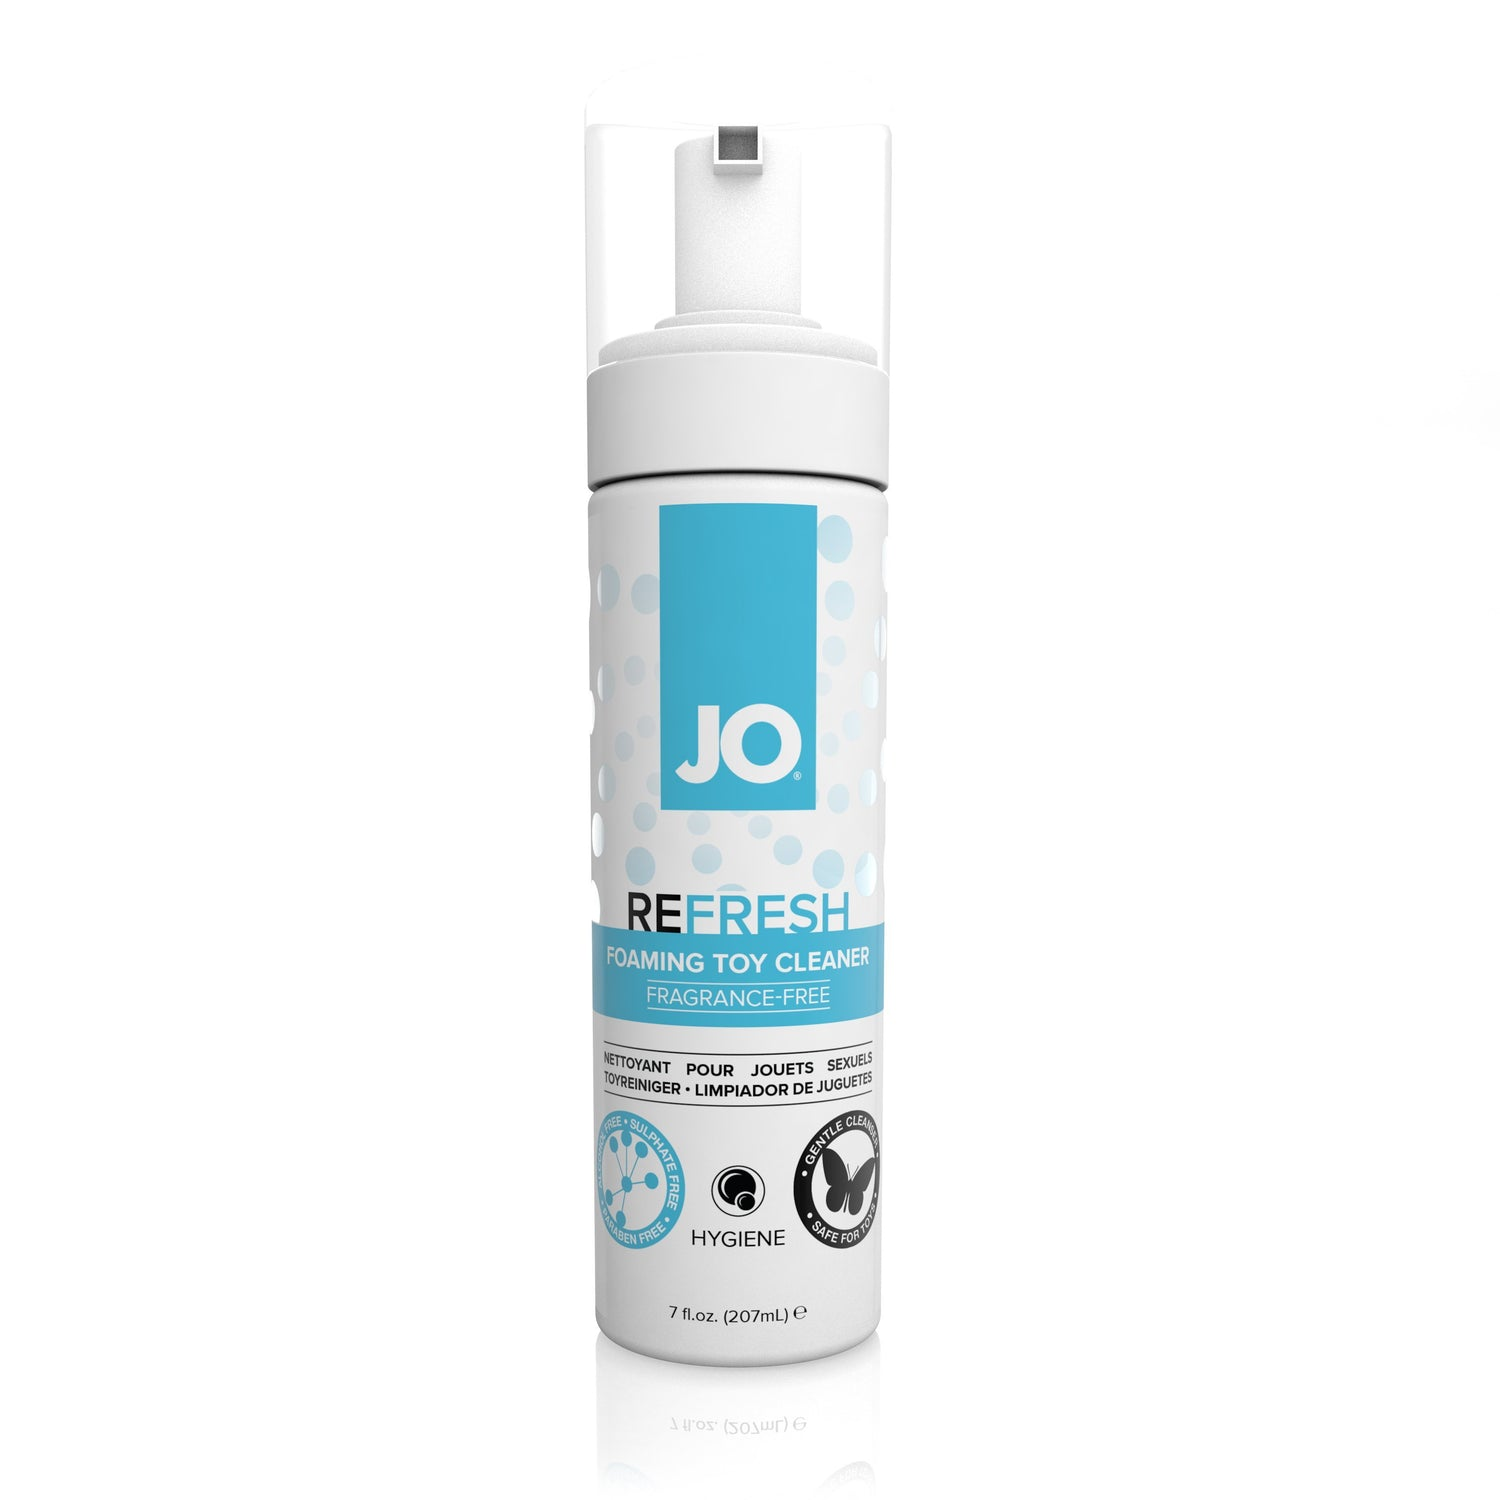 System JO - Refresh Foaming Toy Cleaner 207 ml Toy Cleaners Singapore